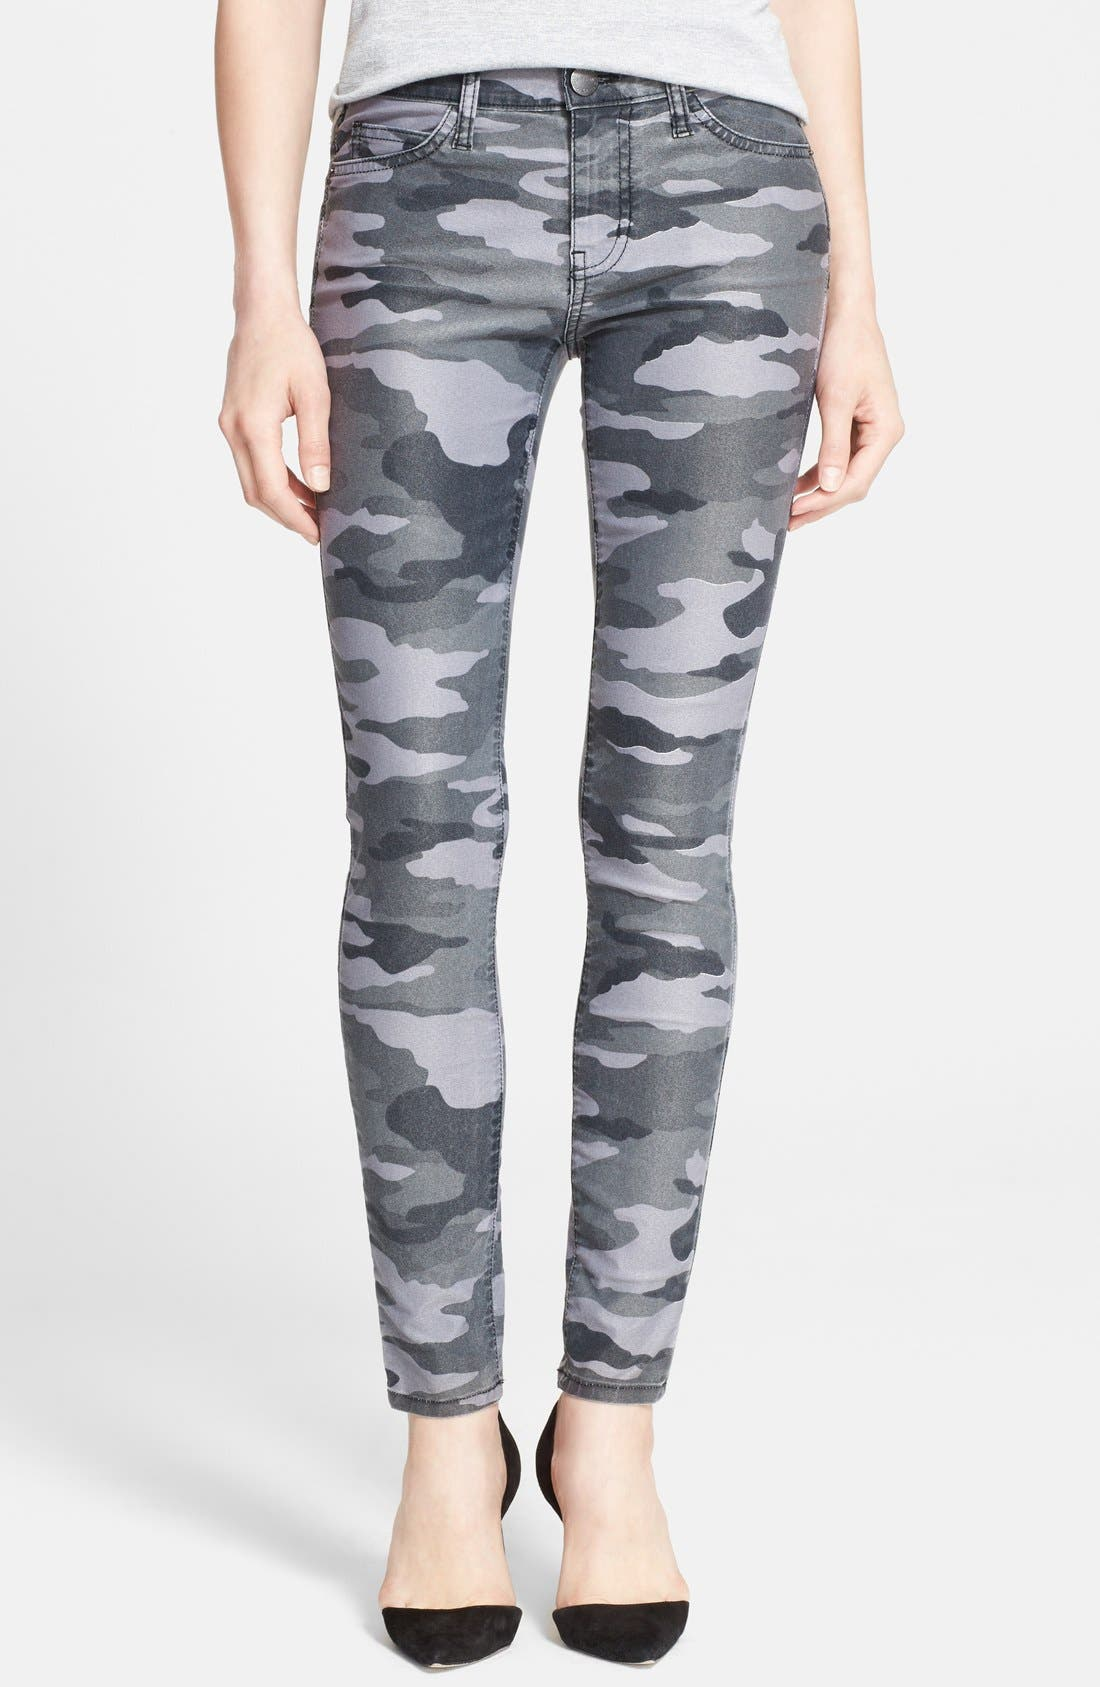 CURRENT/ELLIOTT, 'The Ankle Skinny' Coated Camo Skinny Jeans, Main thumbnail 1, color, 009